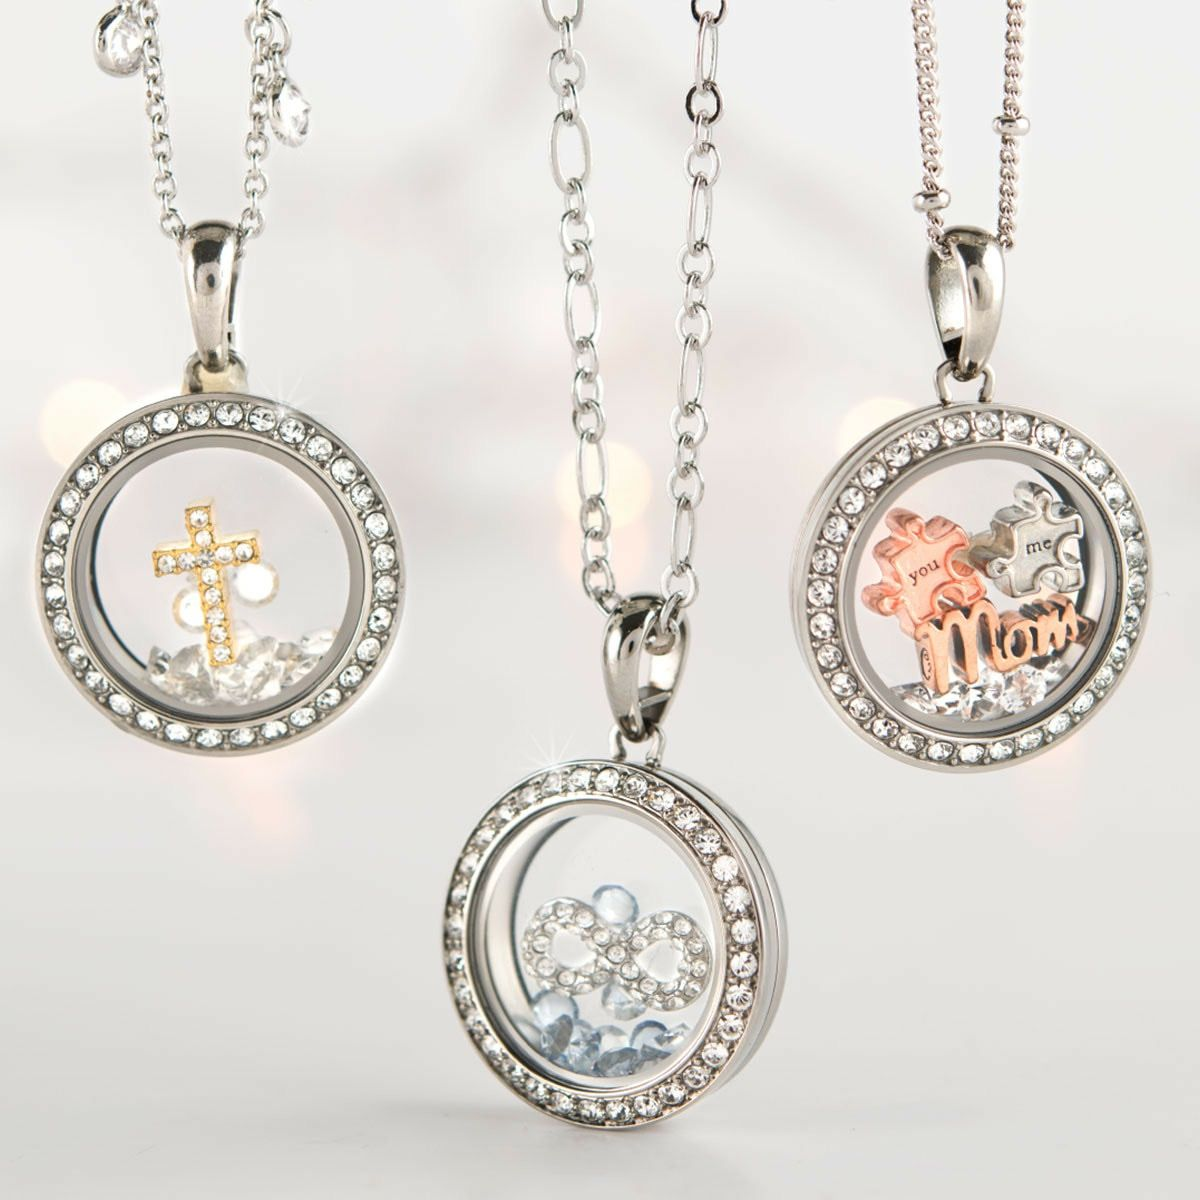 Introducing Our New Petite Living Locket Chrissy Describes The Size As Shmedium Bigger Than A Mini Smaller Than The Med Mom Jewelry Jewelry Original Jewelry